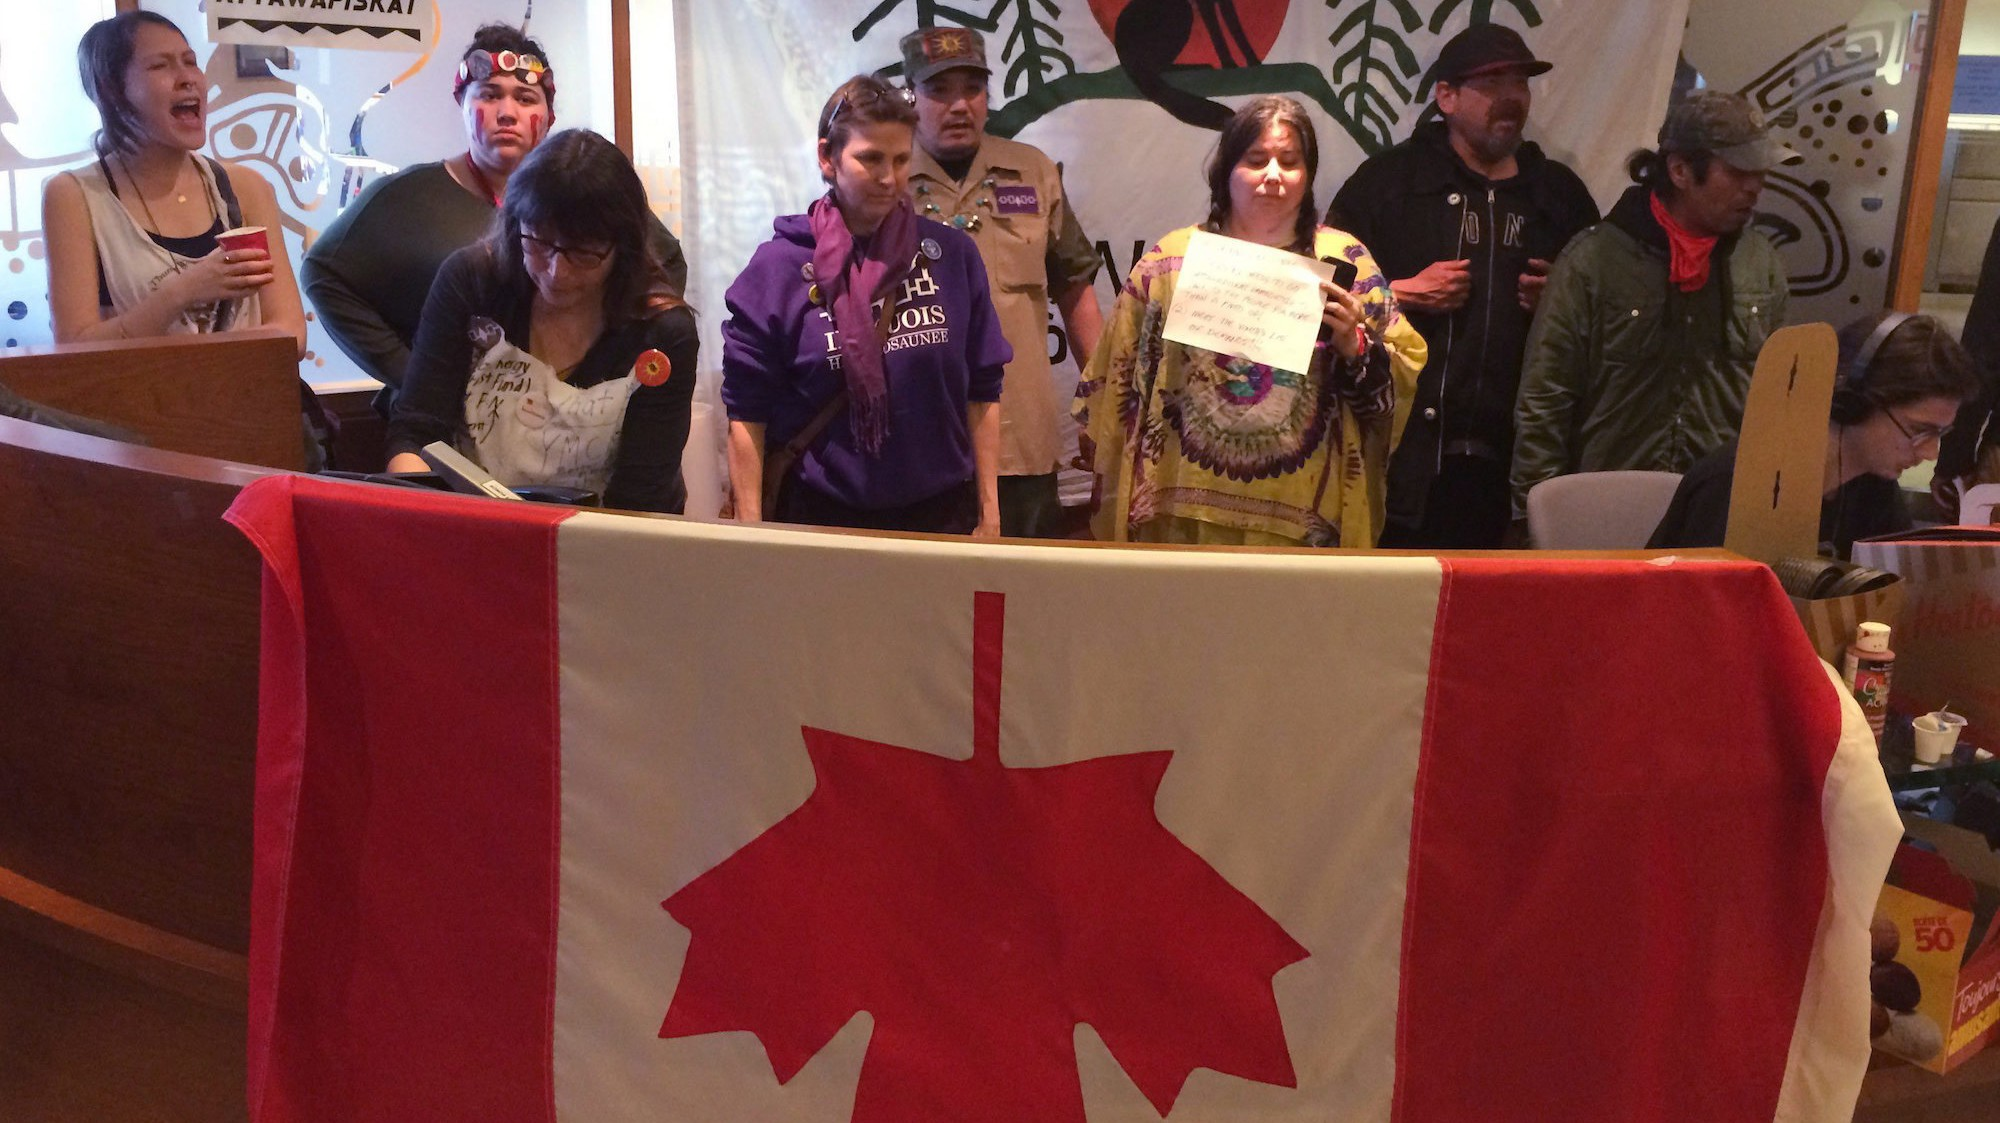 Burning Sweetgrass, Protesters Occupy Canadian Government Office Over Indigenous Suicide Crisis